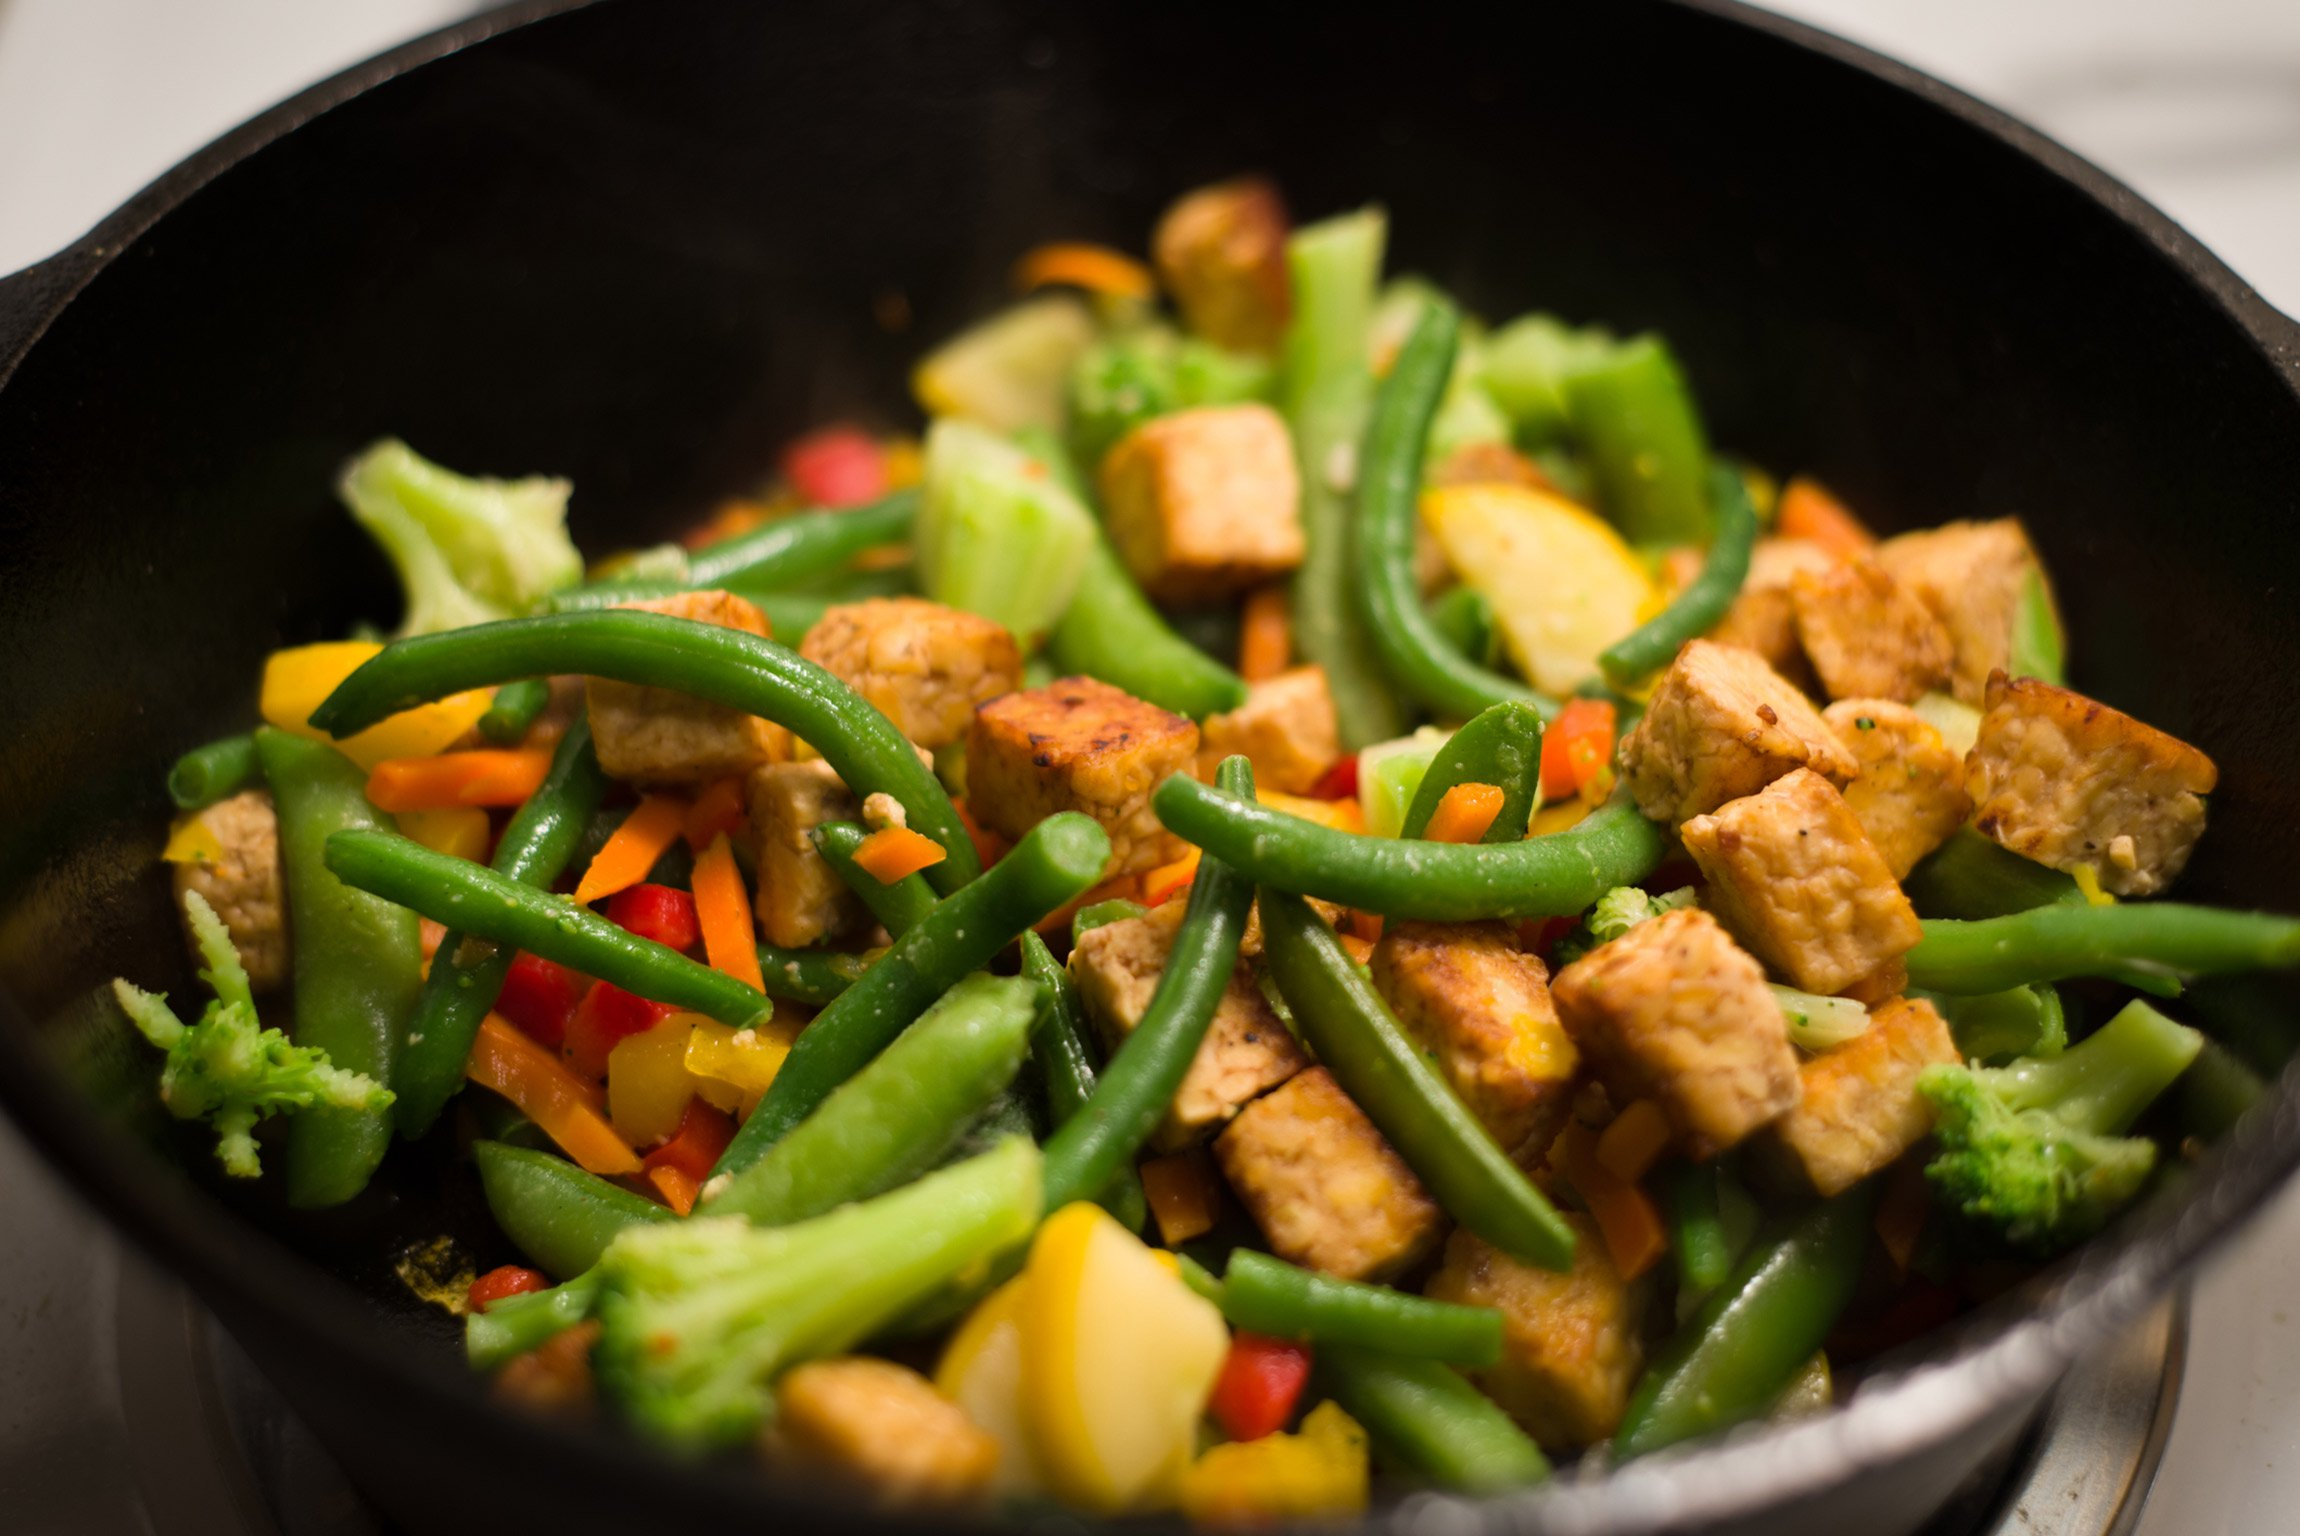 Tempeh stir-fry provides plant-based protein